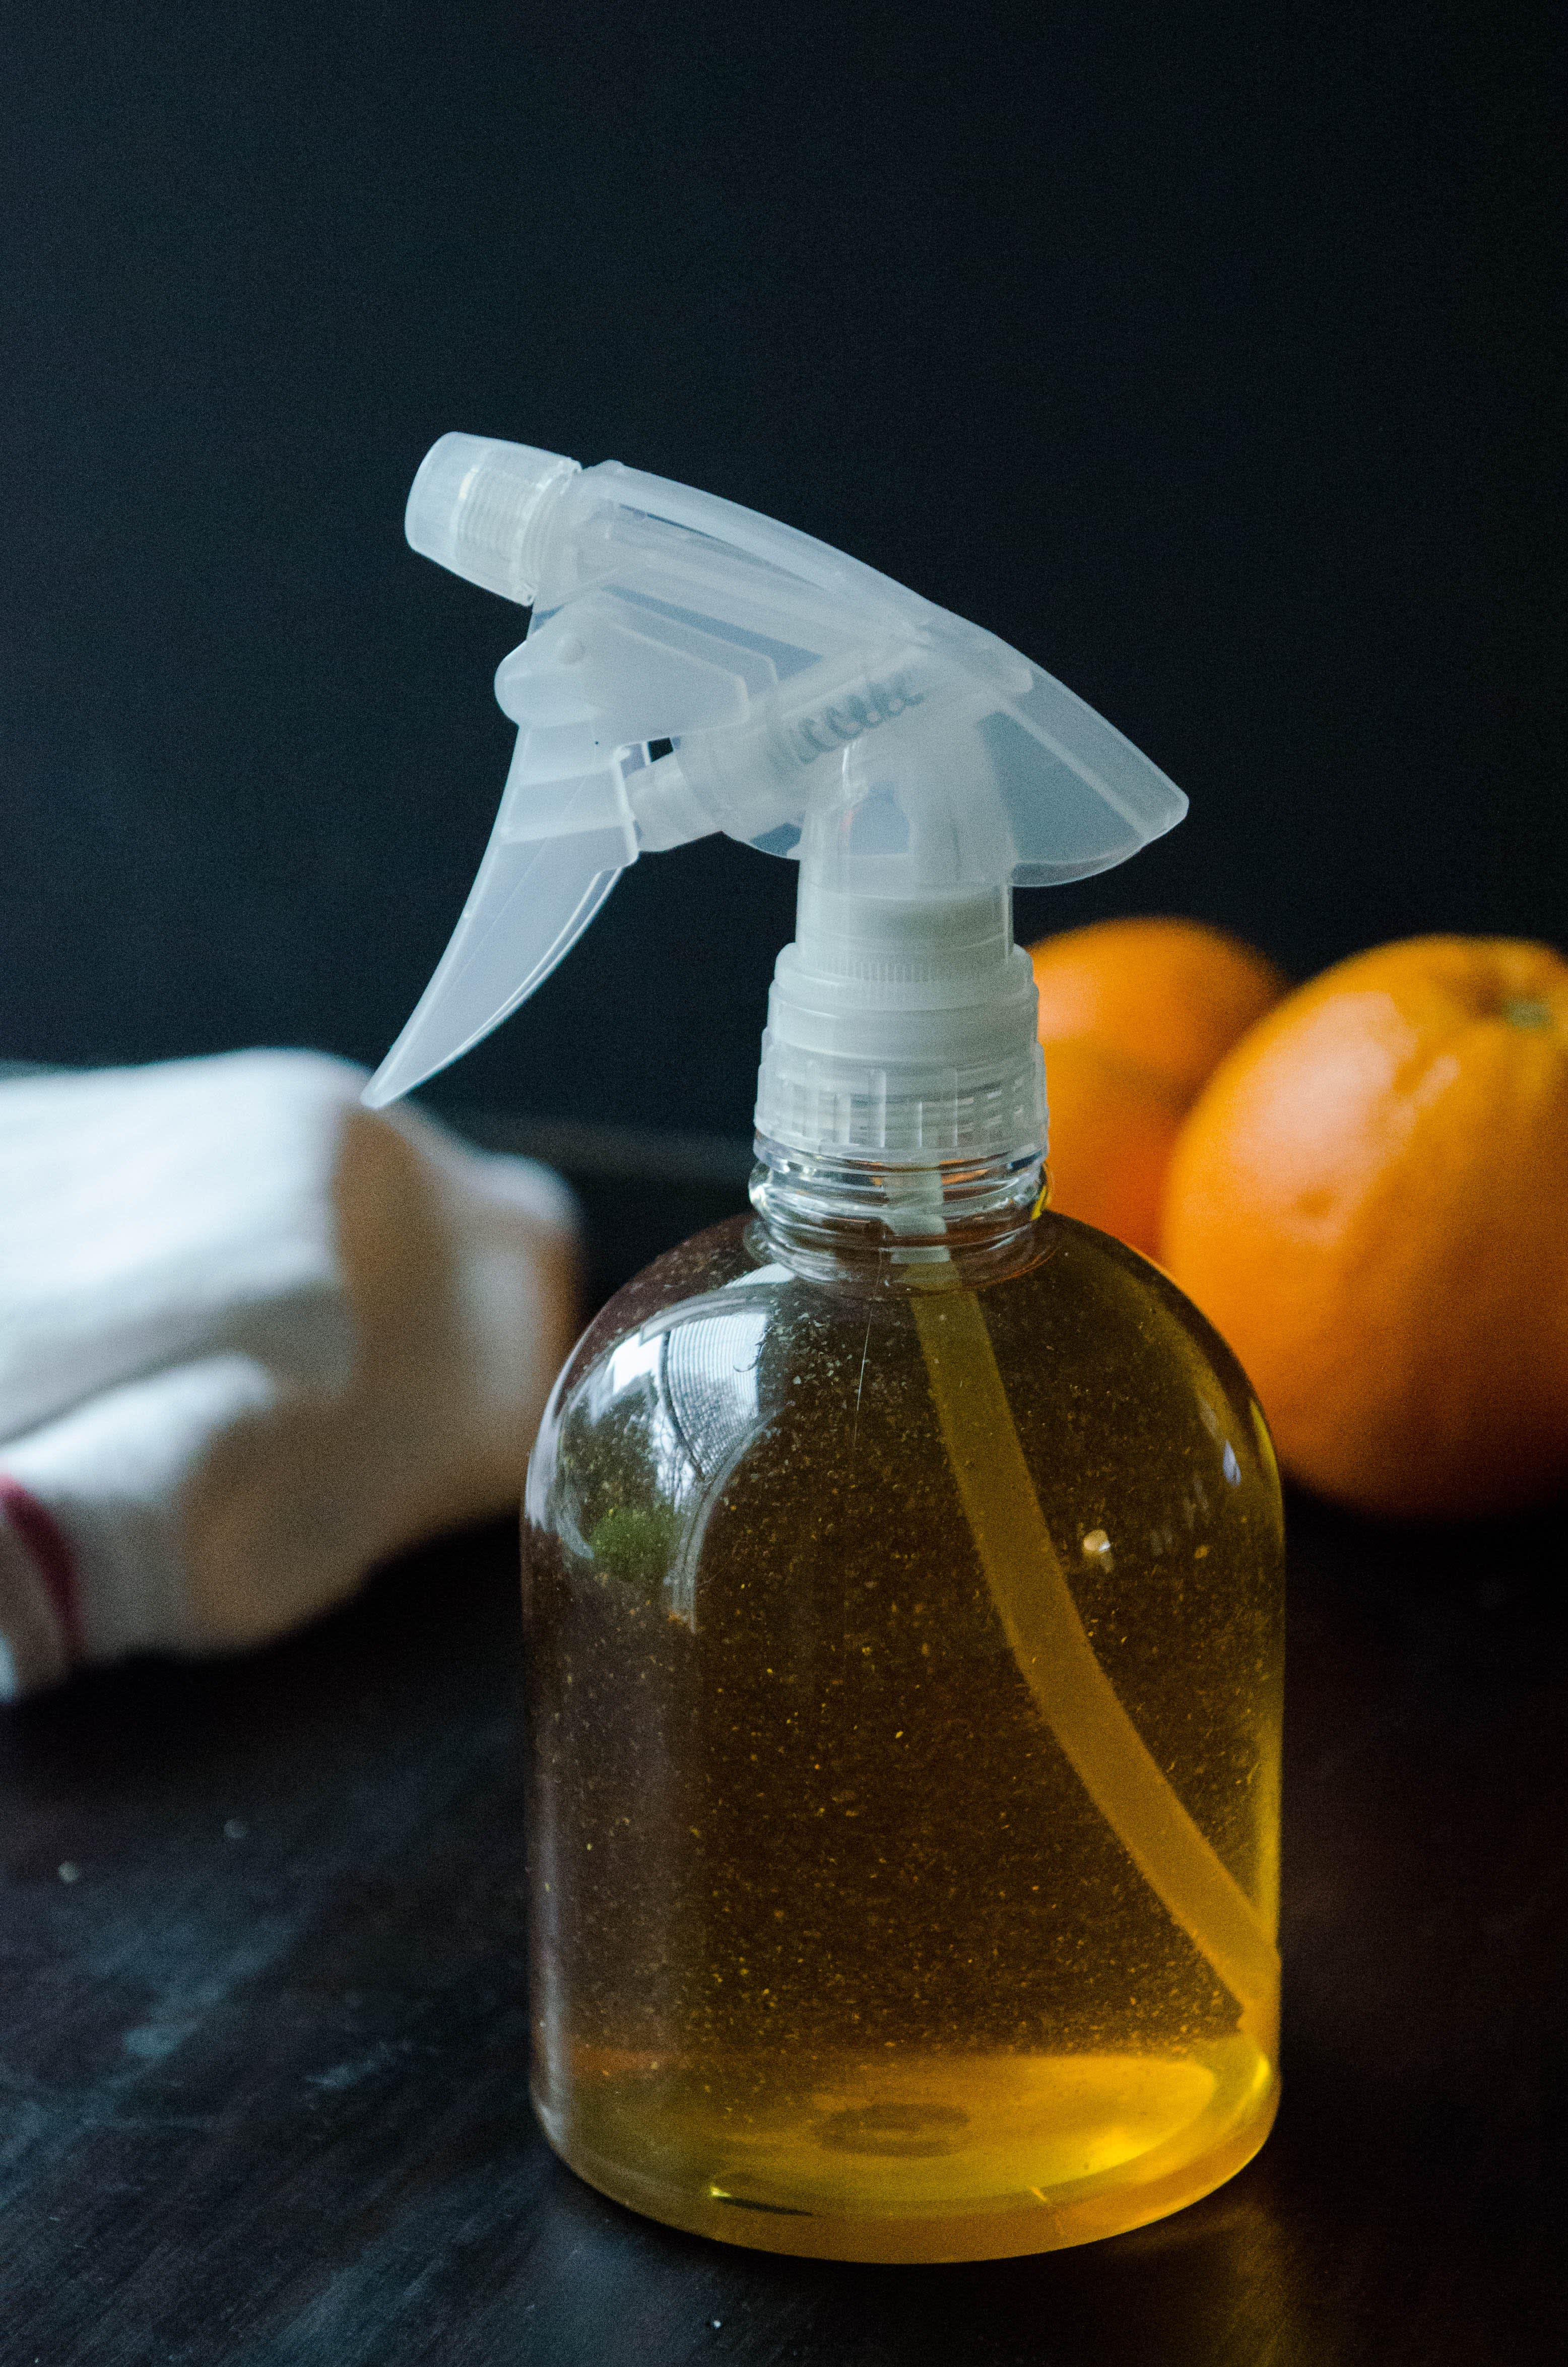 How To Make an All-Purpose Kitchen Cleaner Using Citrus